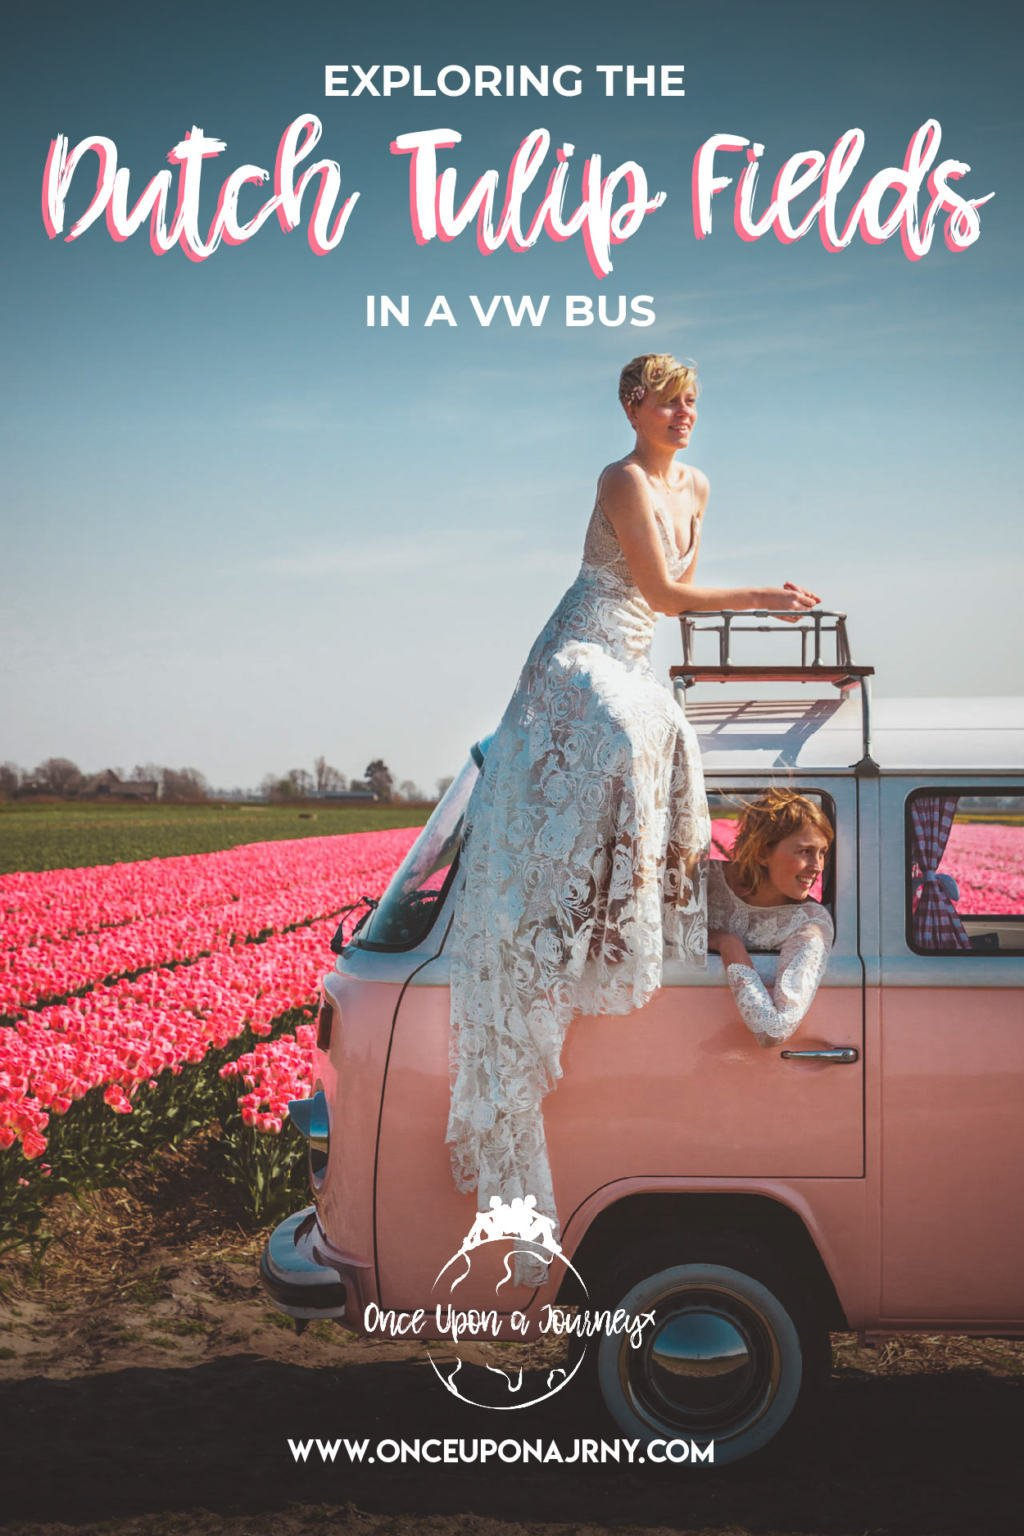 Exploring the Tulip Fields in the Netherlands in a VW Bus | Once Upon A Journey LGBT Travel Blog